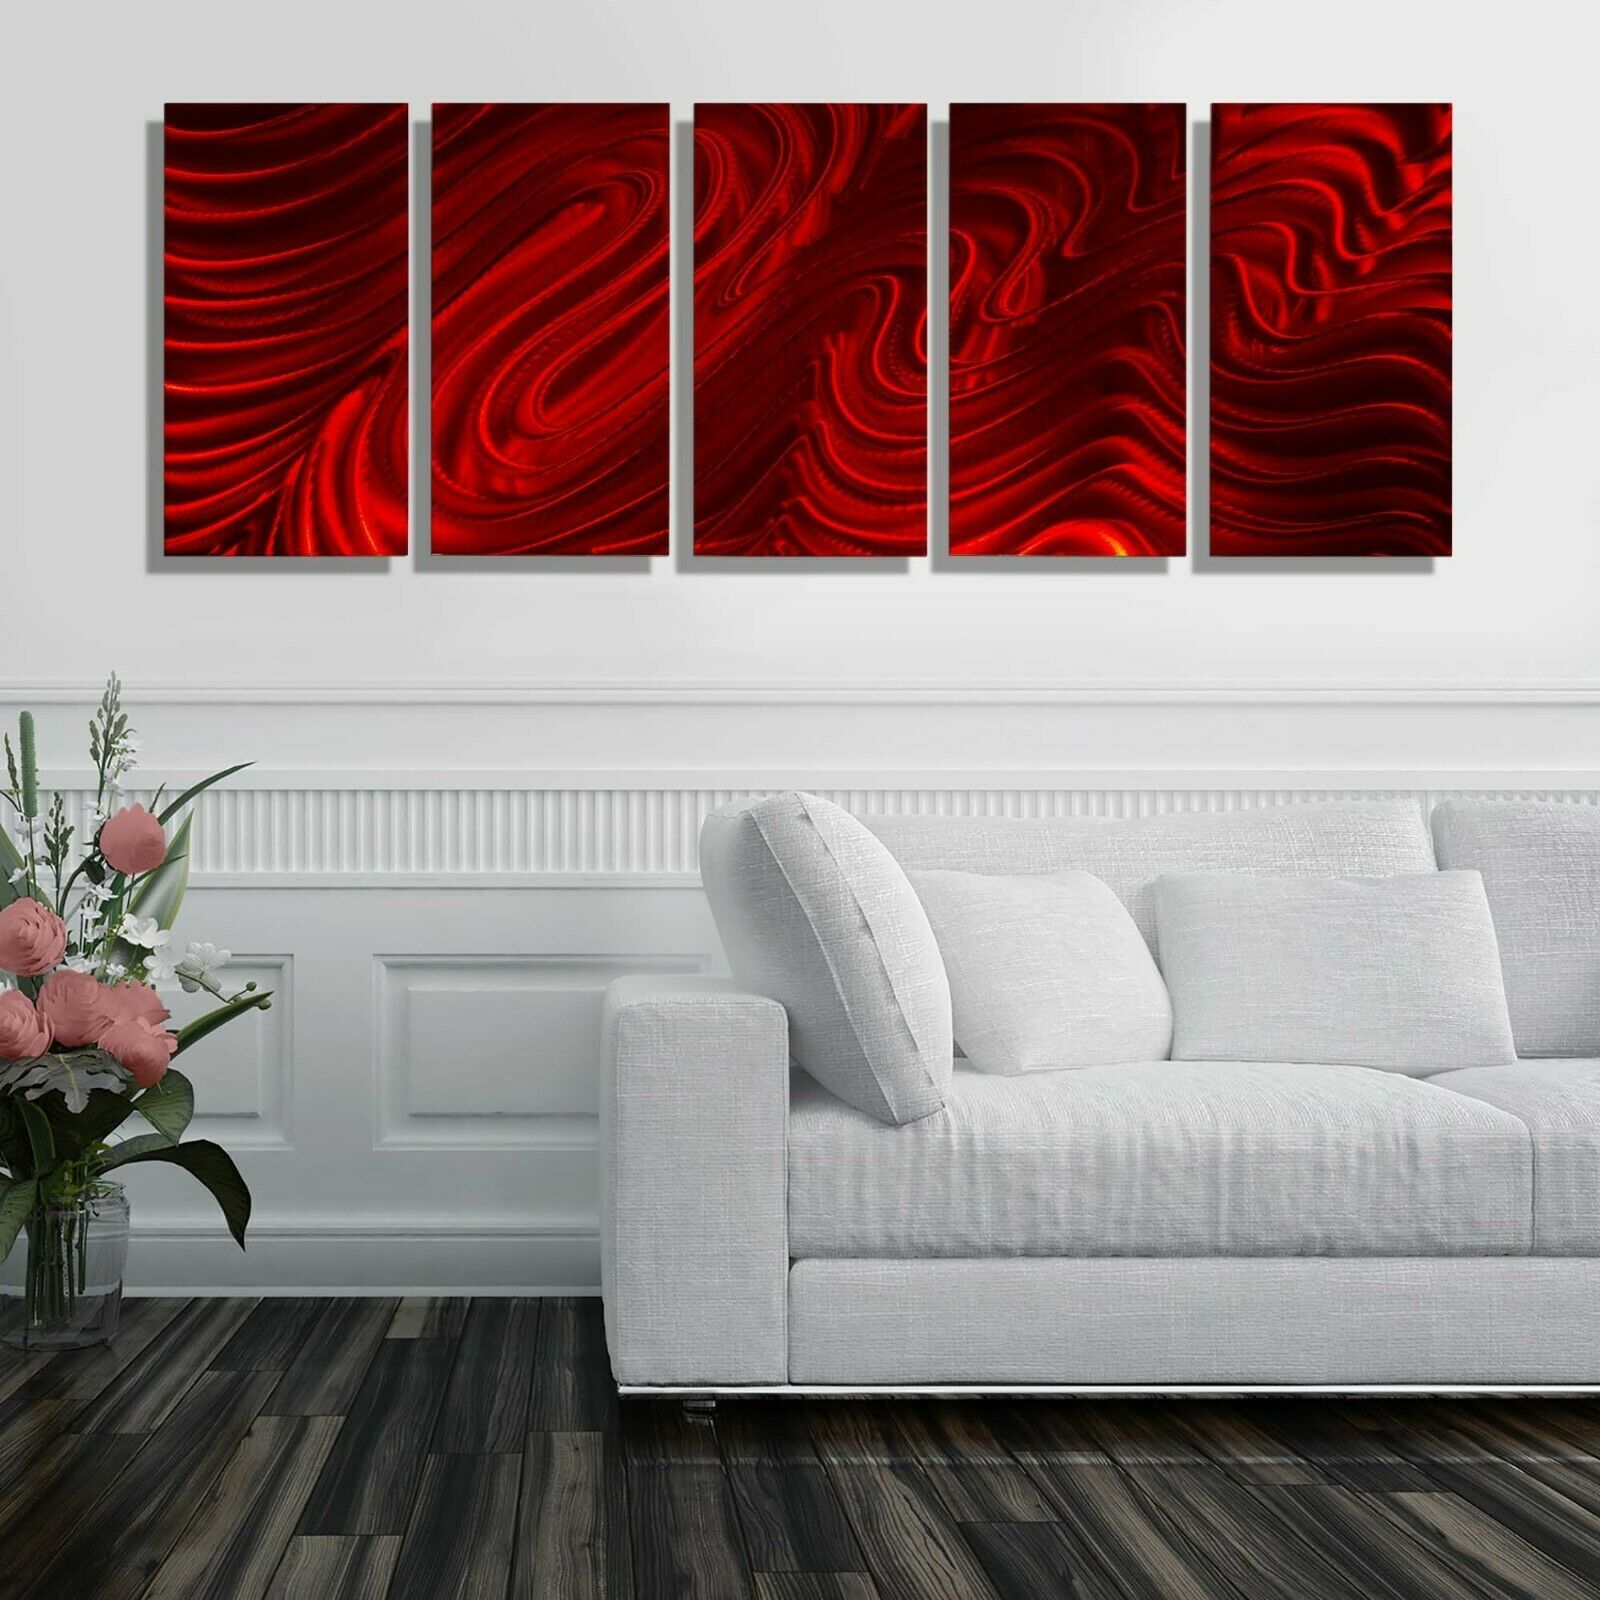 Ultra Modern Metal Wall Art Large Red Painting Decor Signed Original Jon Allen Ebay In 2020 Red Wall Decor Red Wall Art Red Metal Wall Art